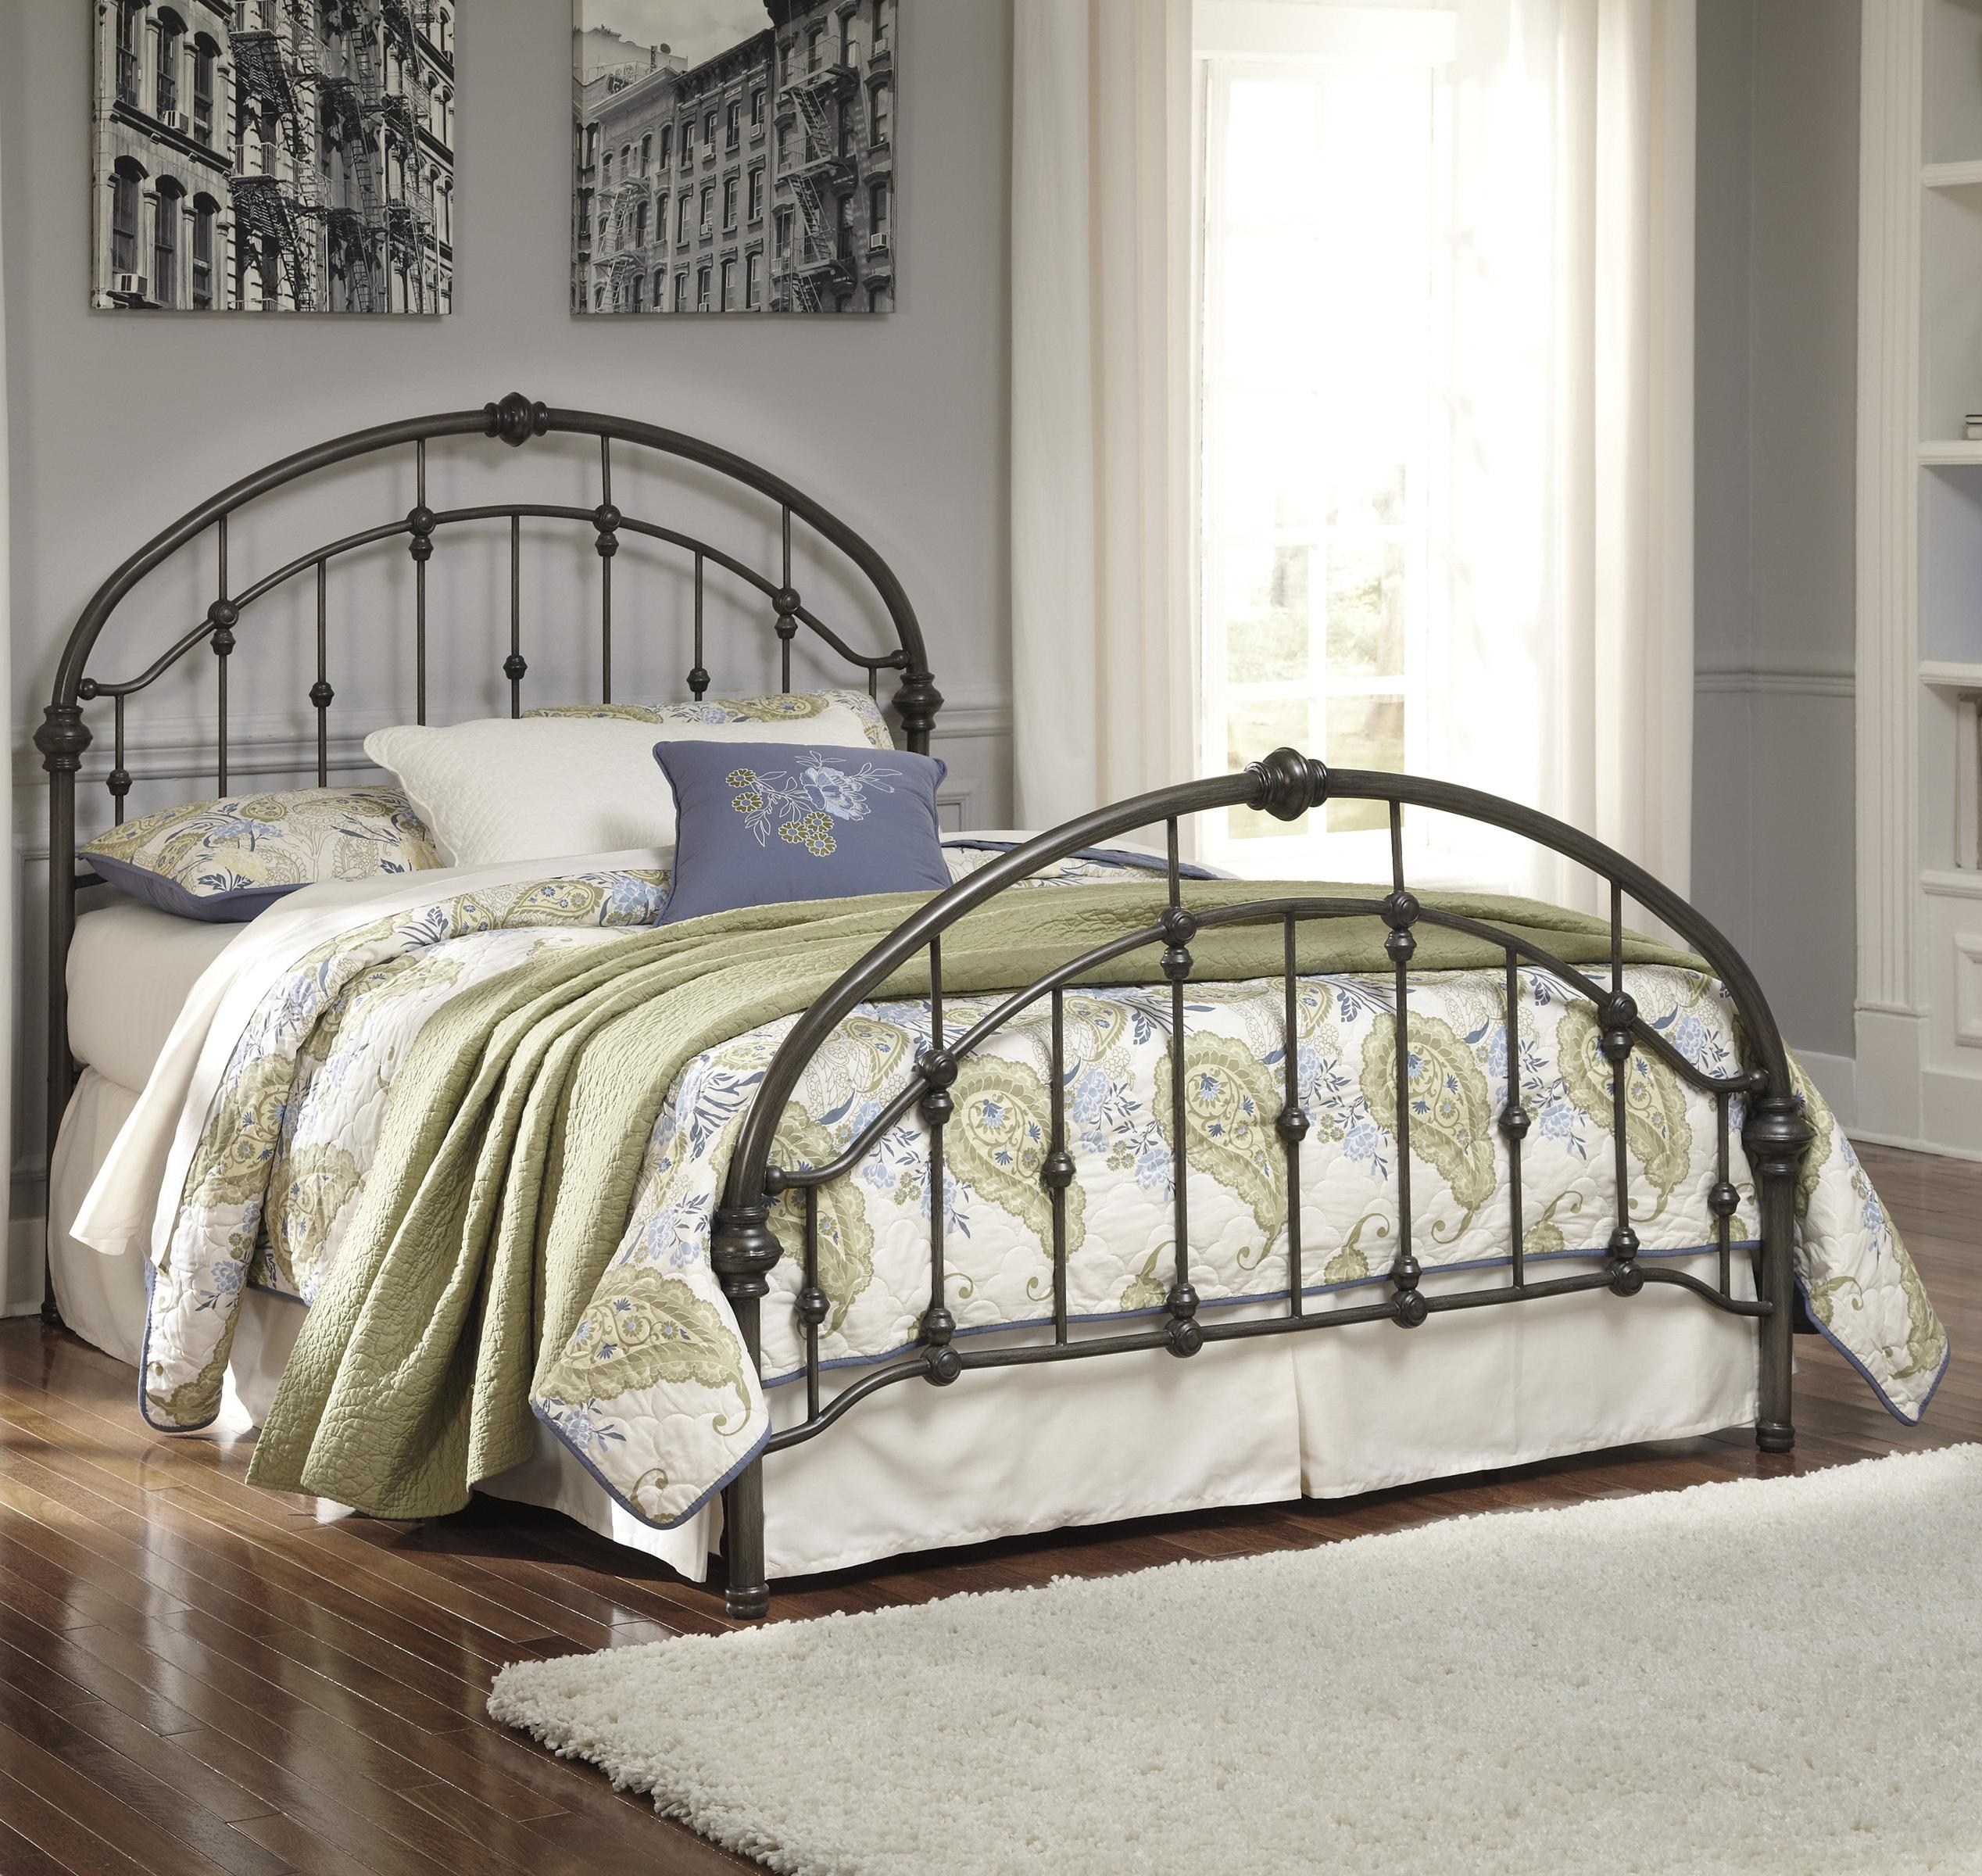 Signature Design by Ashley Nashburg Queen Arched Metal Bed in Bronze